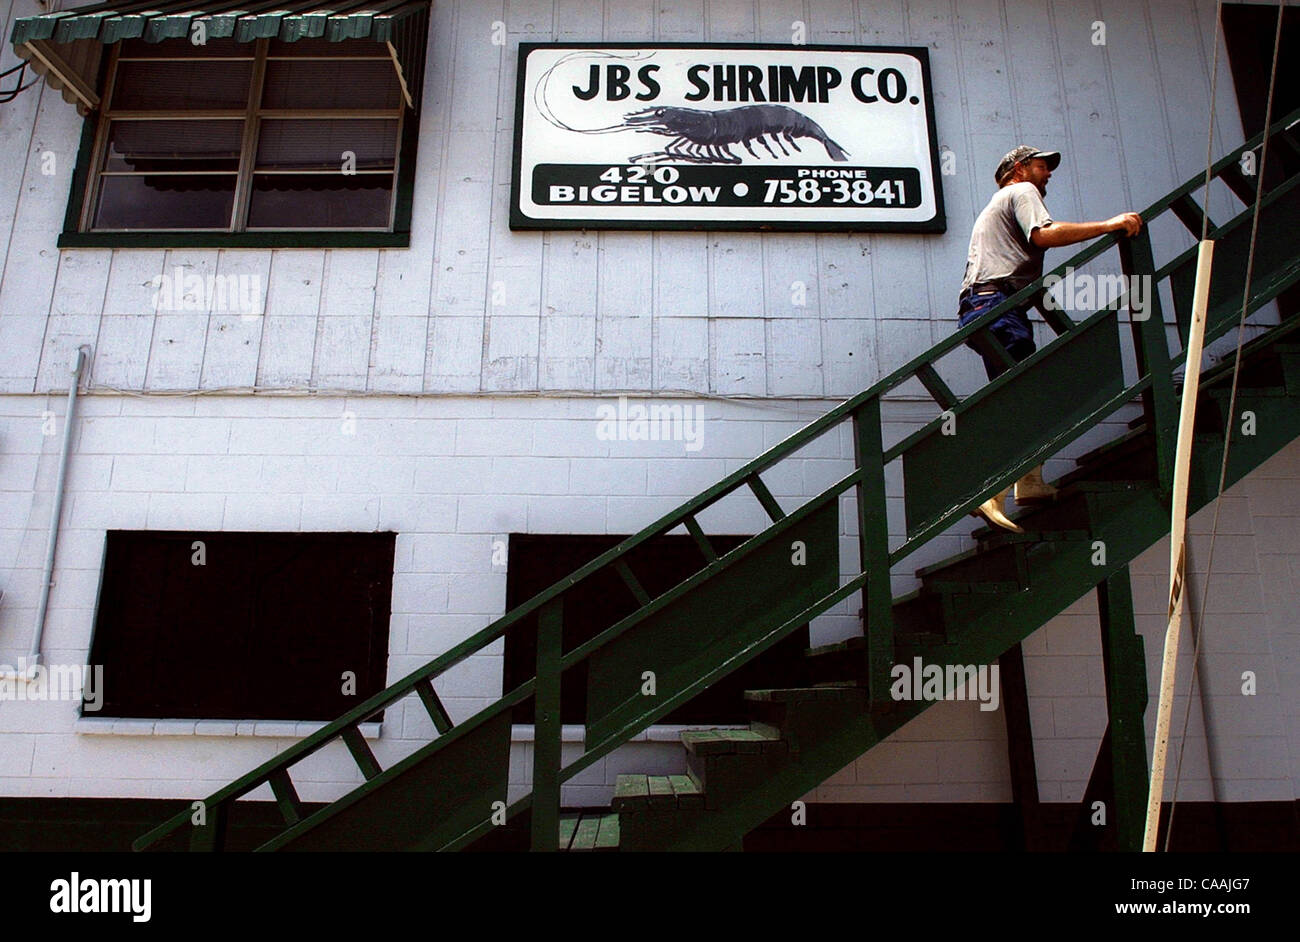 Jeff Noel climbs the stairs to settle the bill at JBS Shrimp Company in Aransas Pass. He bought ice and fuel and - Stock Image